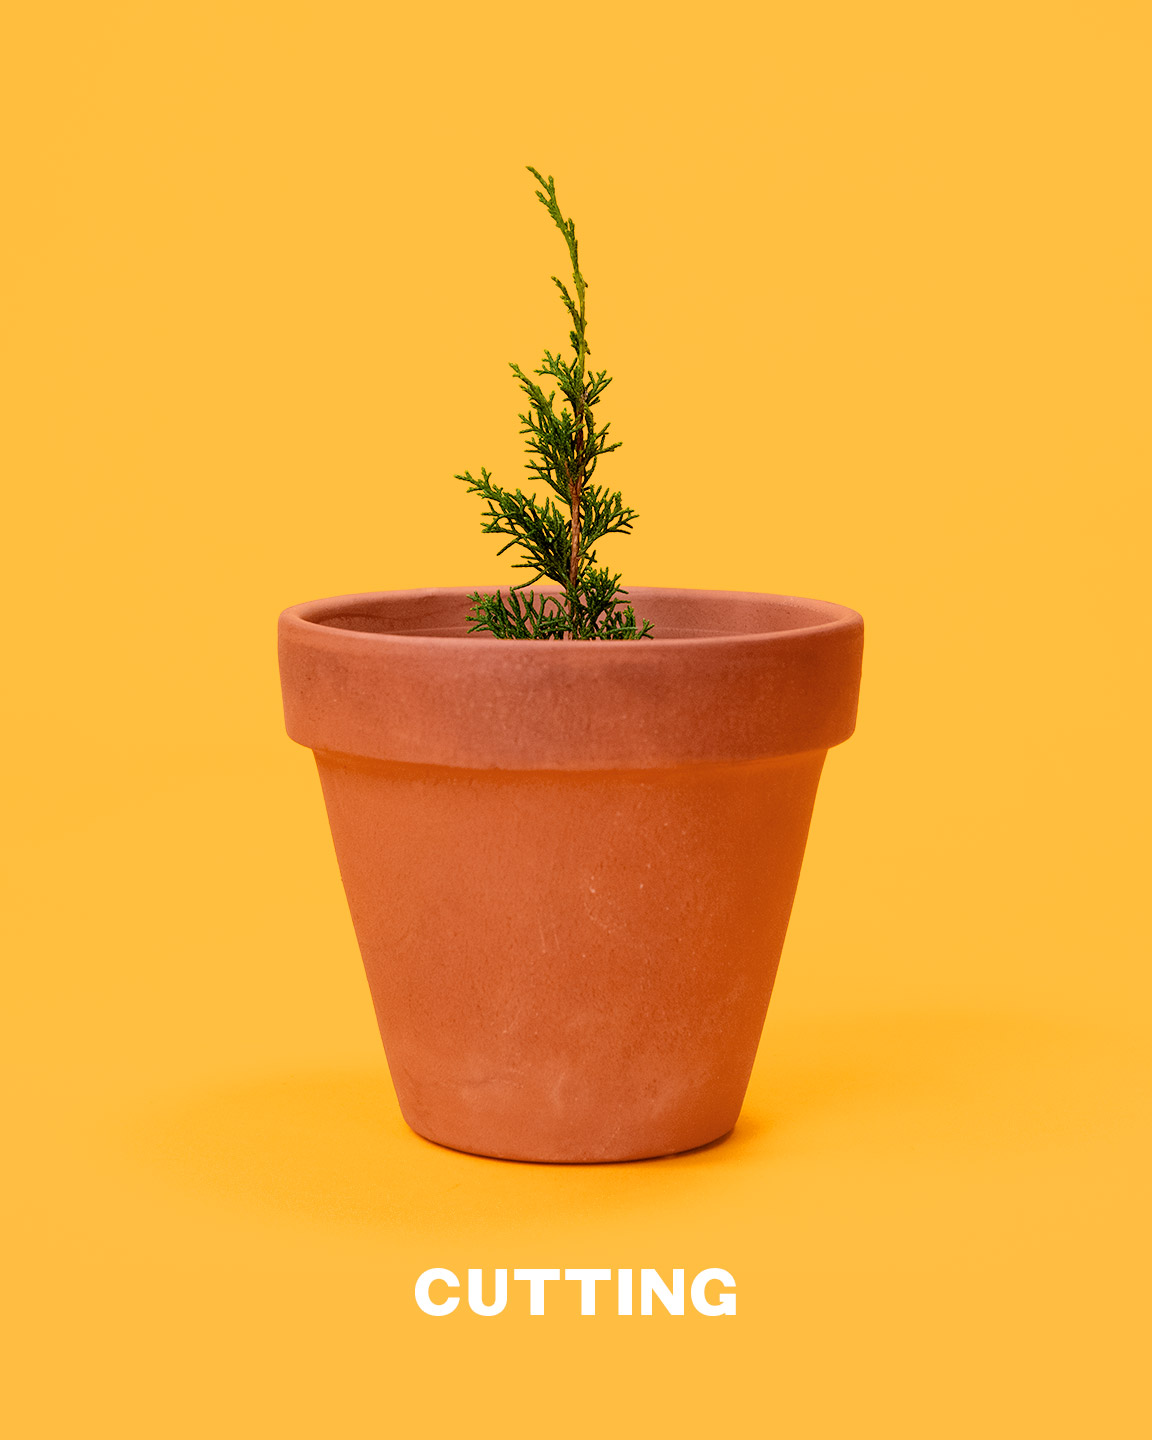 bonsai_cutting_mirai